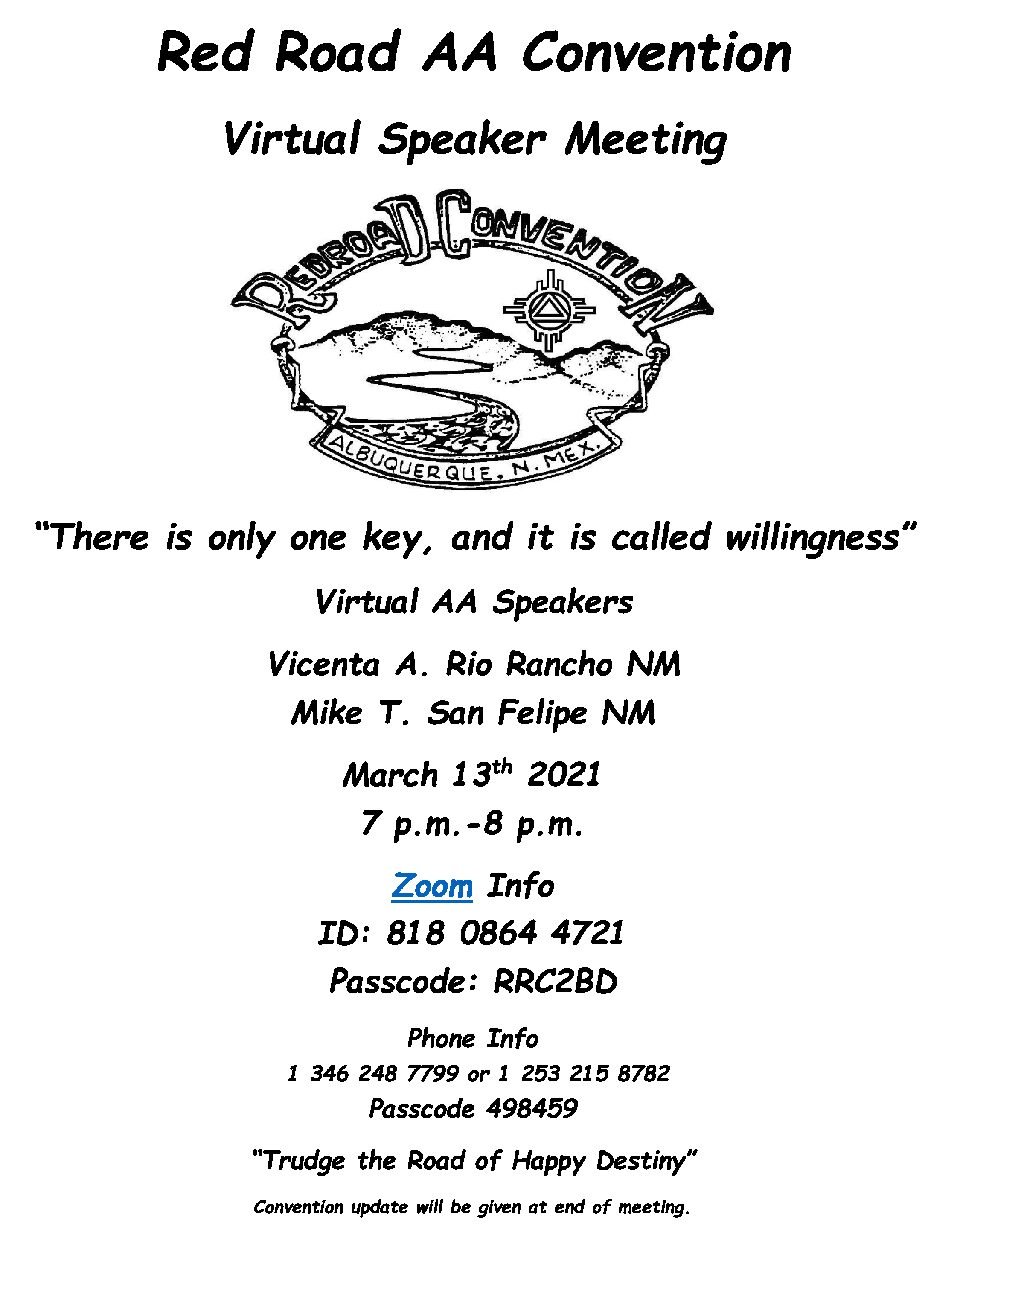 Red Road Convention Virtual Speaker Meeting